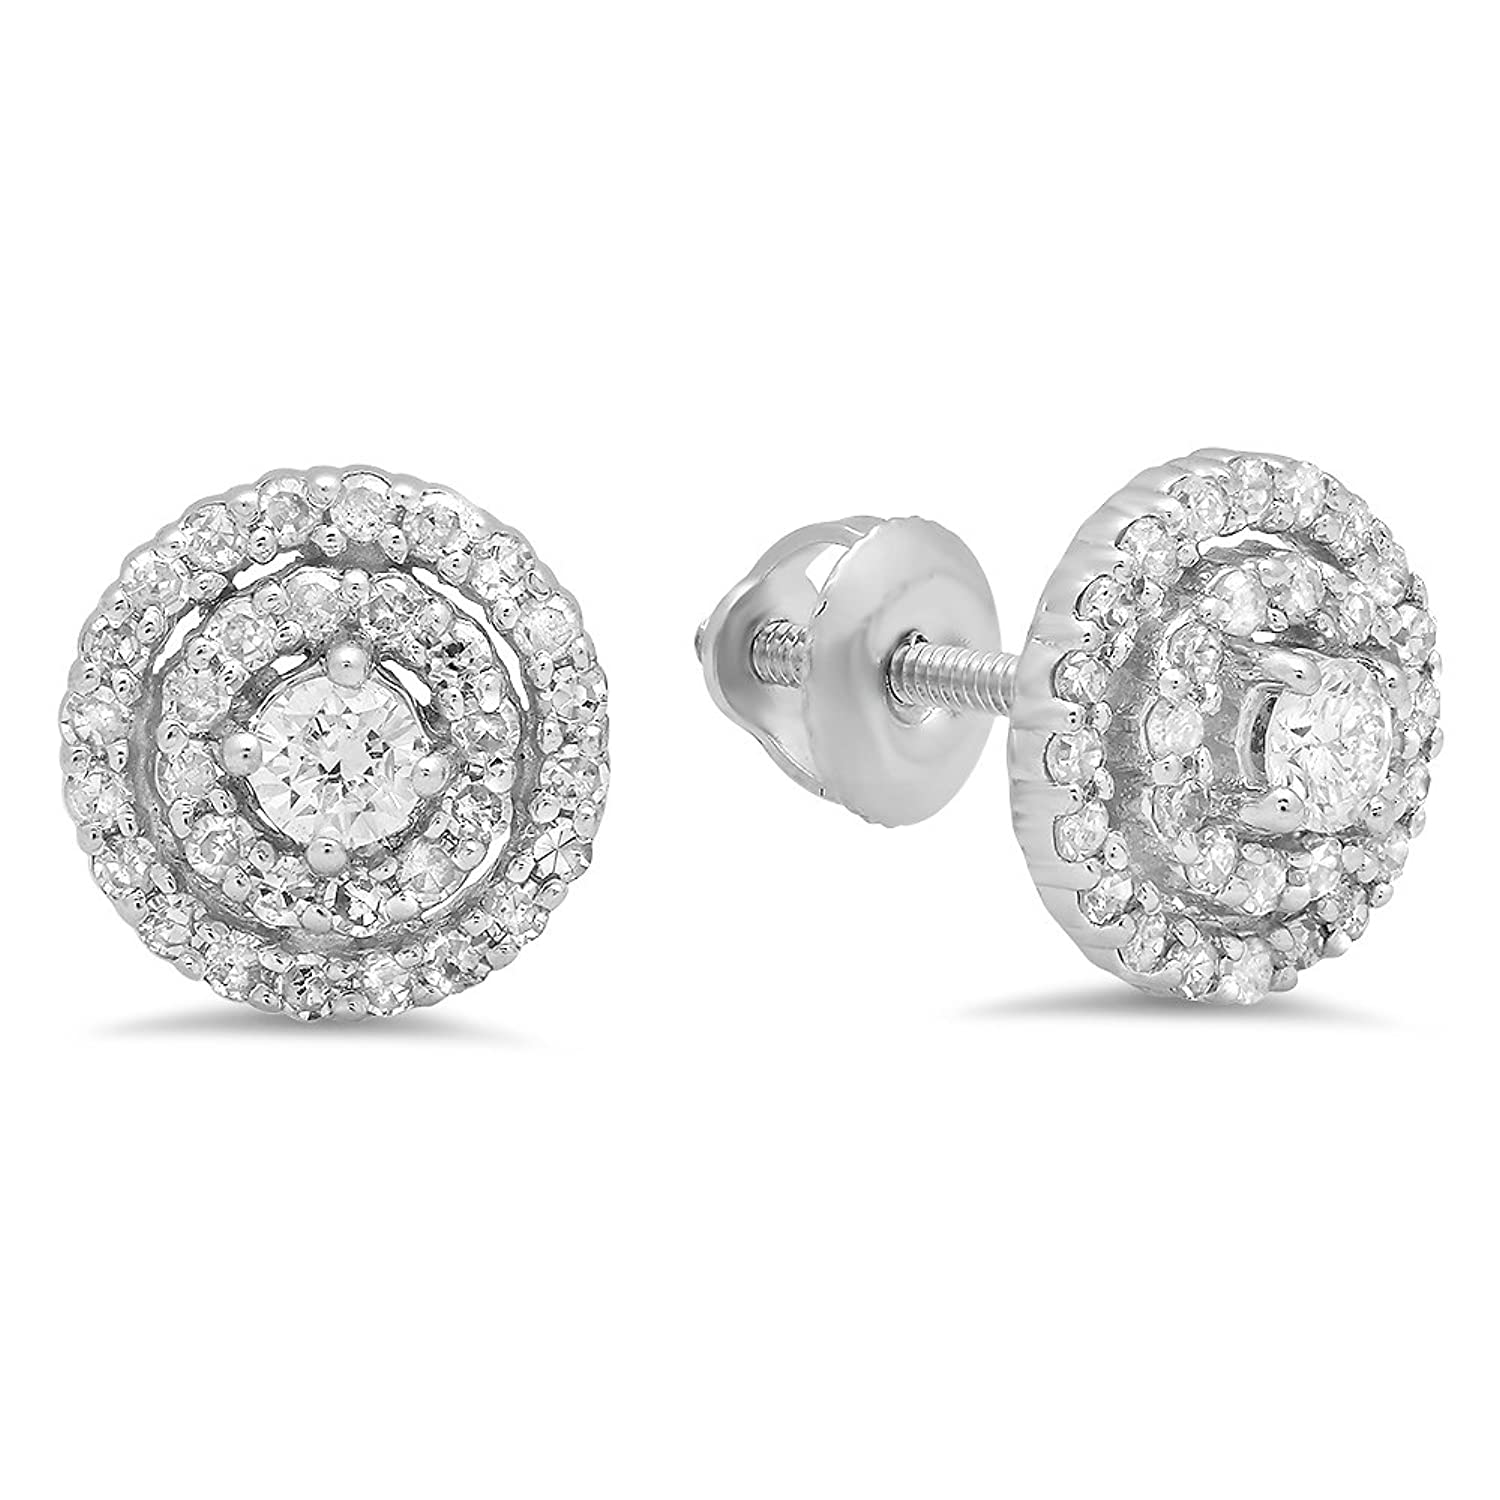 0.40 Carat (Ctw) 14K White Gold Round Cut White Diamond Ladies Cluster Halo Style Stud Earrings